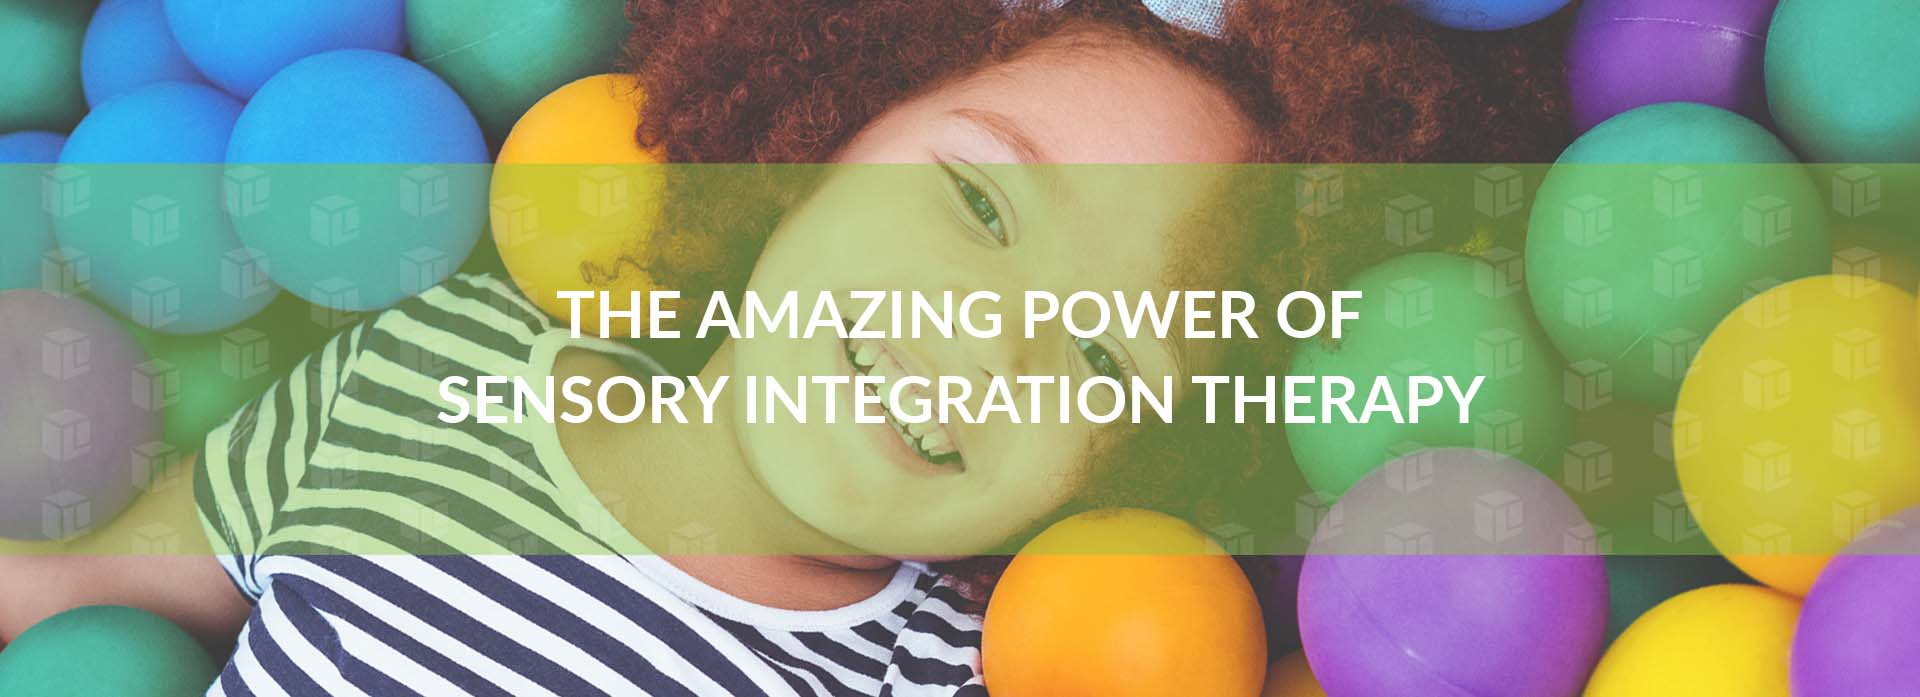 The Amazing Power Of Sensory Integration Therapy